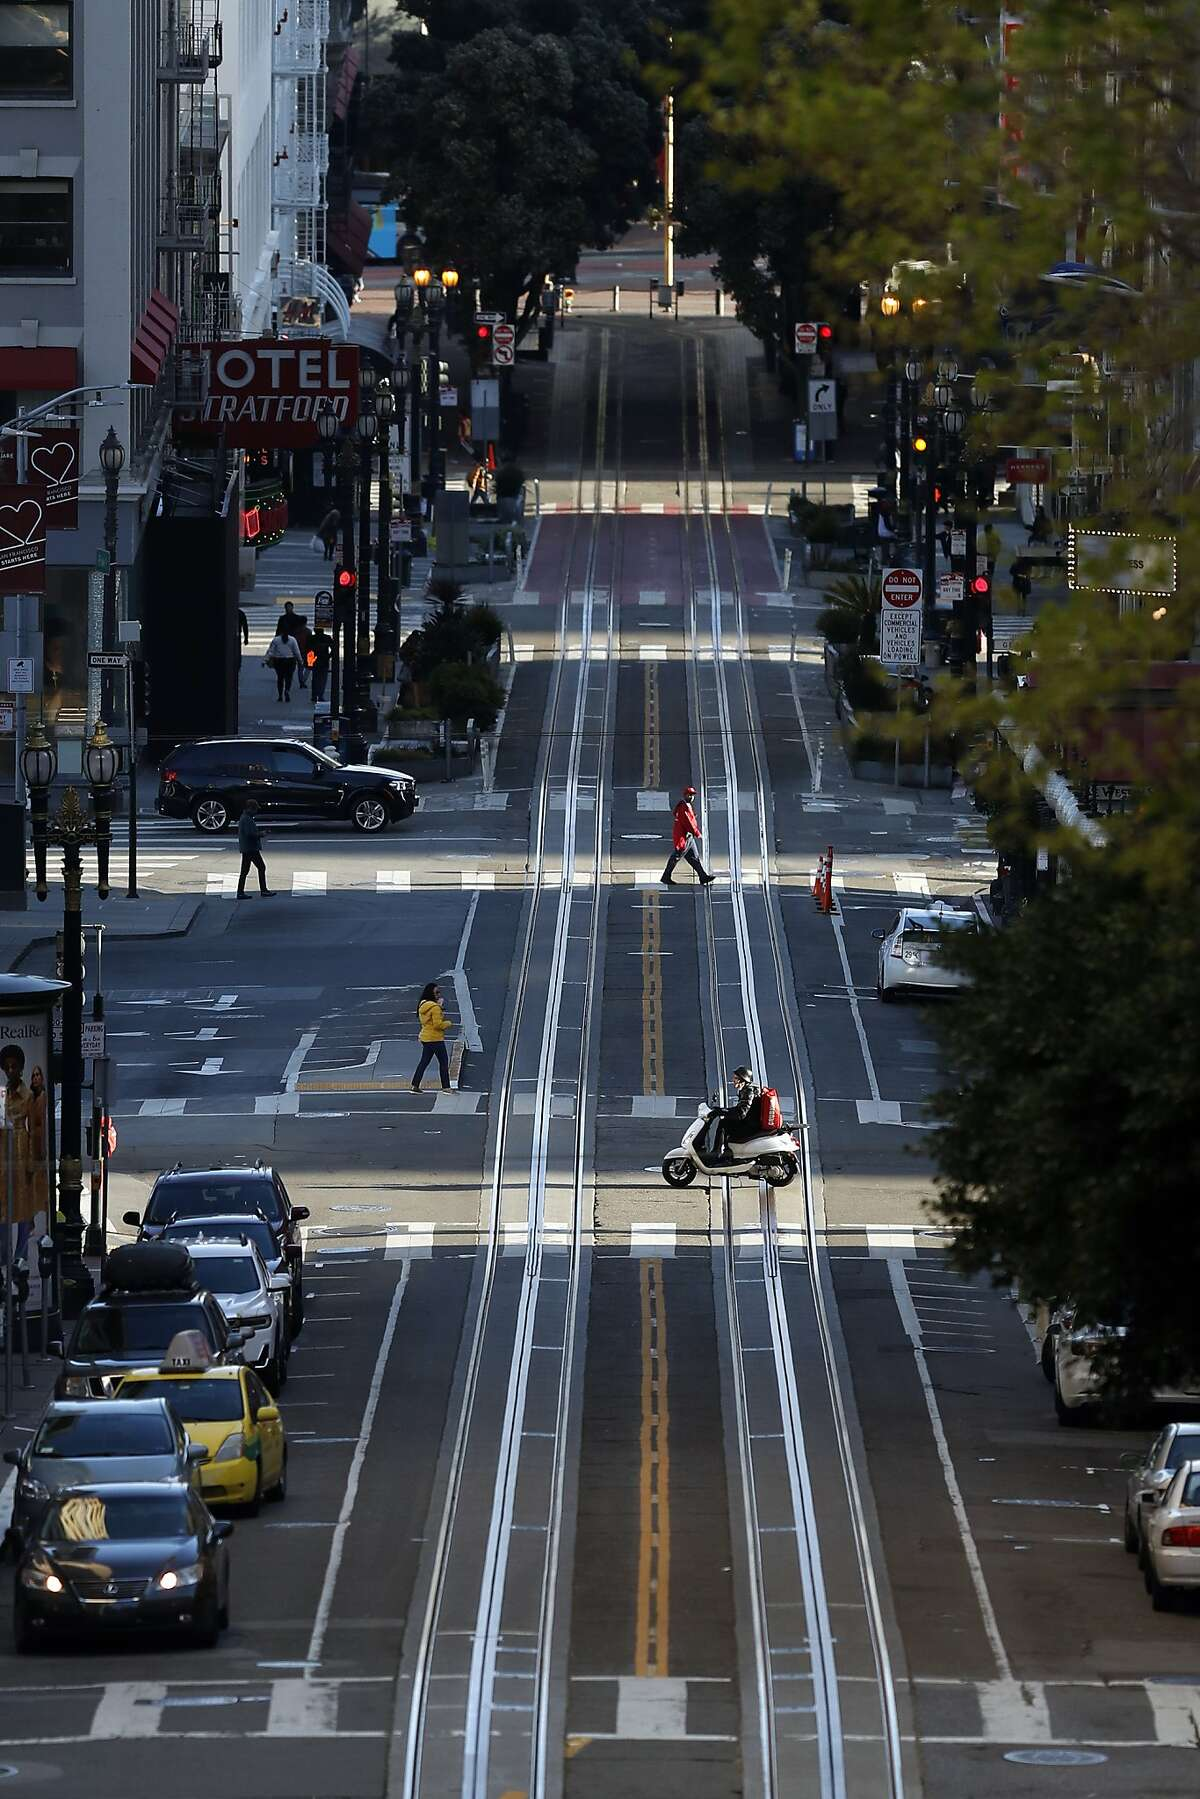 During what normally would be rush hour, vehicular traffic on Powell Street is nearly non-existent during coronavirus shelter in place in San Francisco, Calif., on Thursday, March 19, 2020.